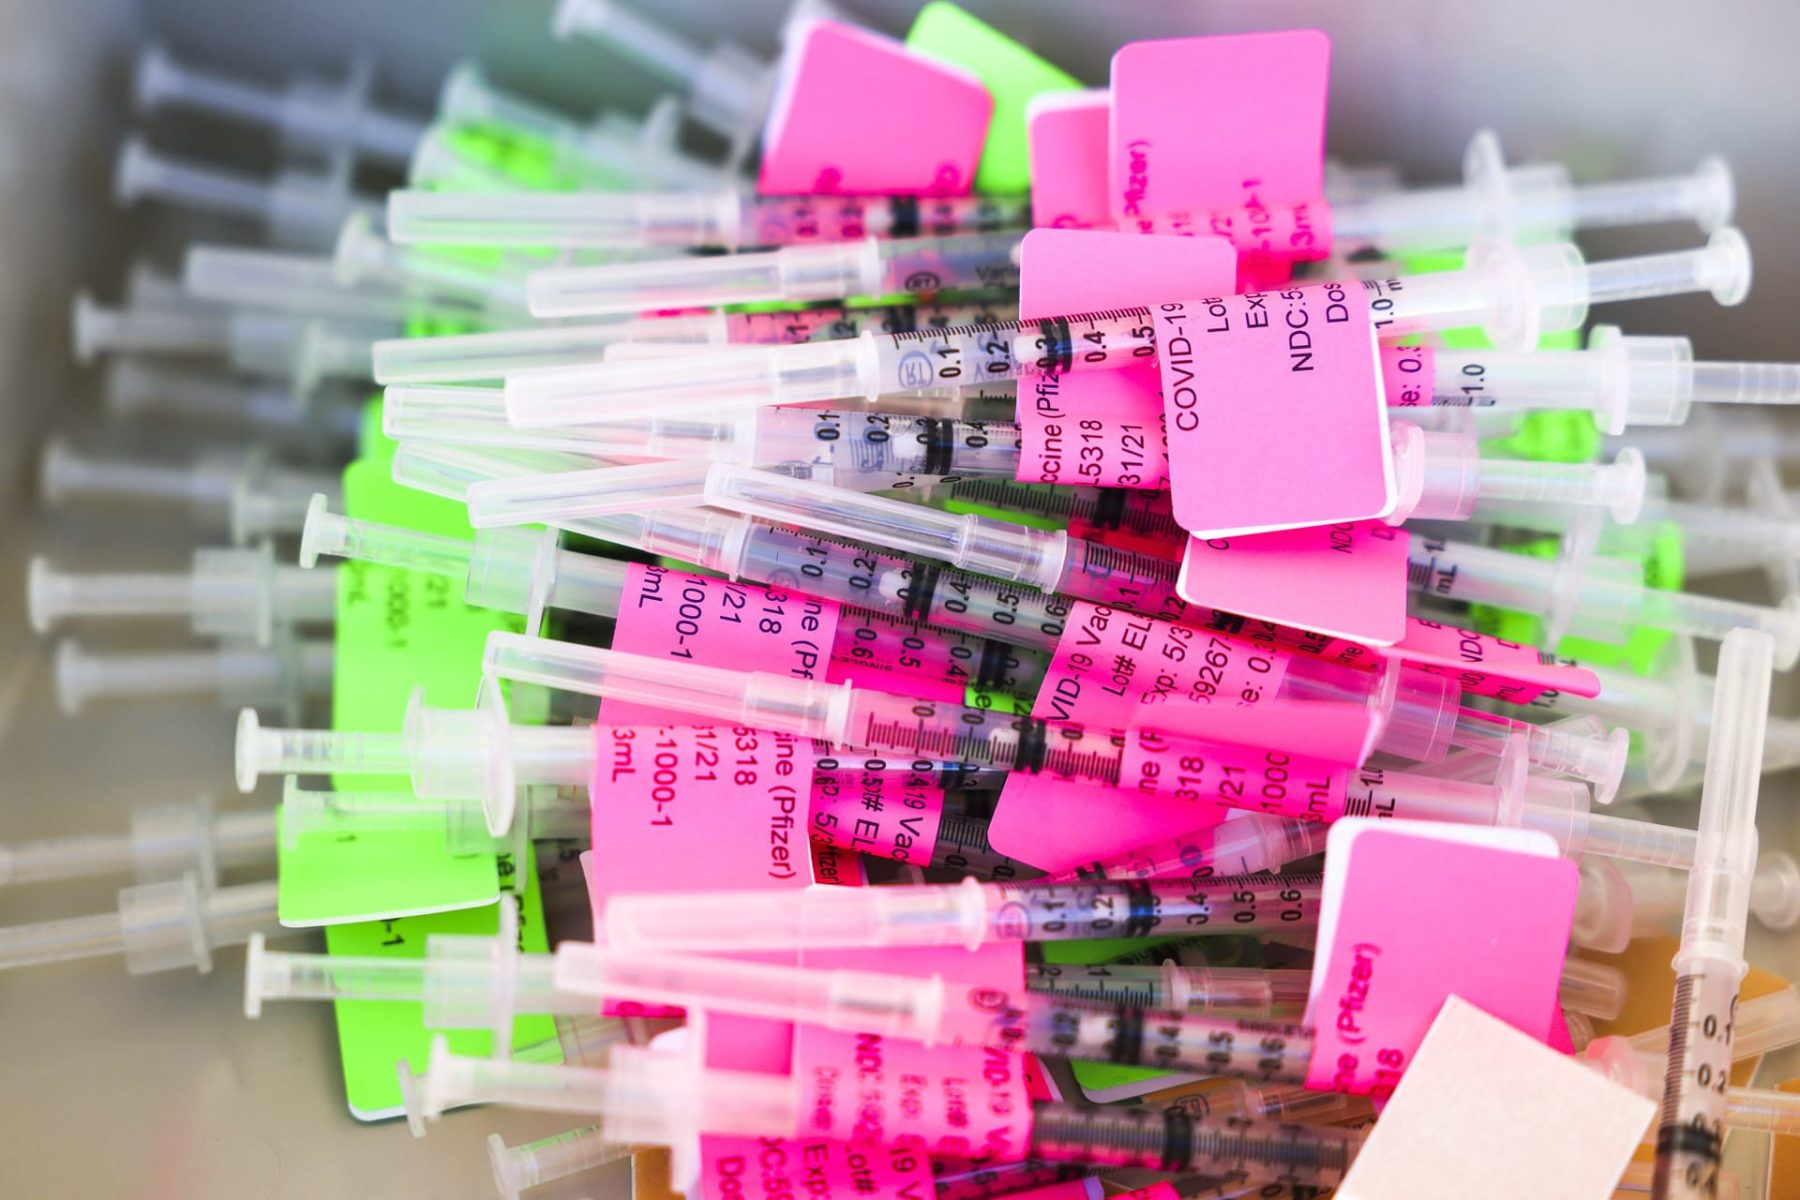 Unused doses of the COVID vaccine in a pile with bright pink and green labels.